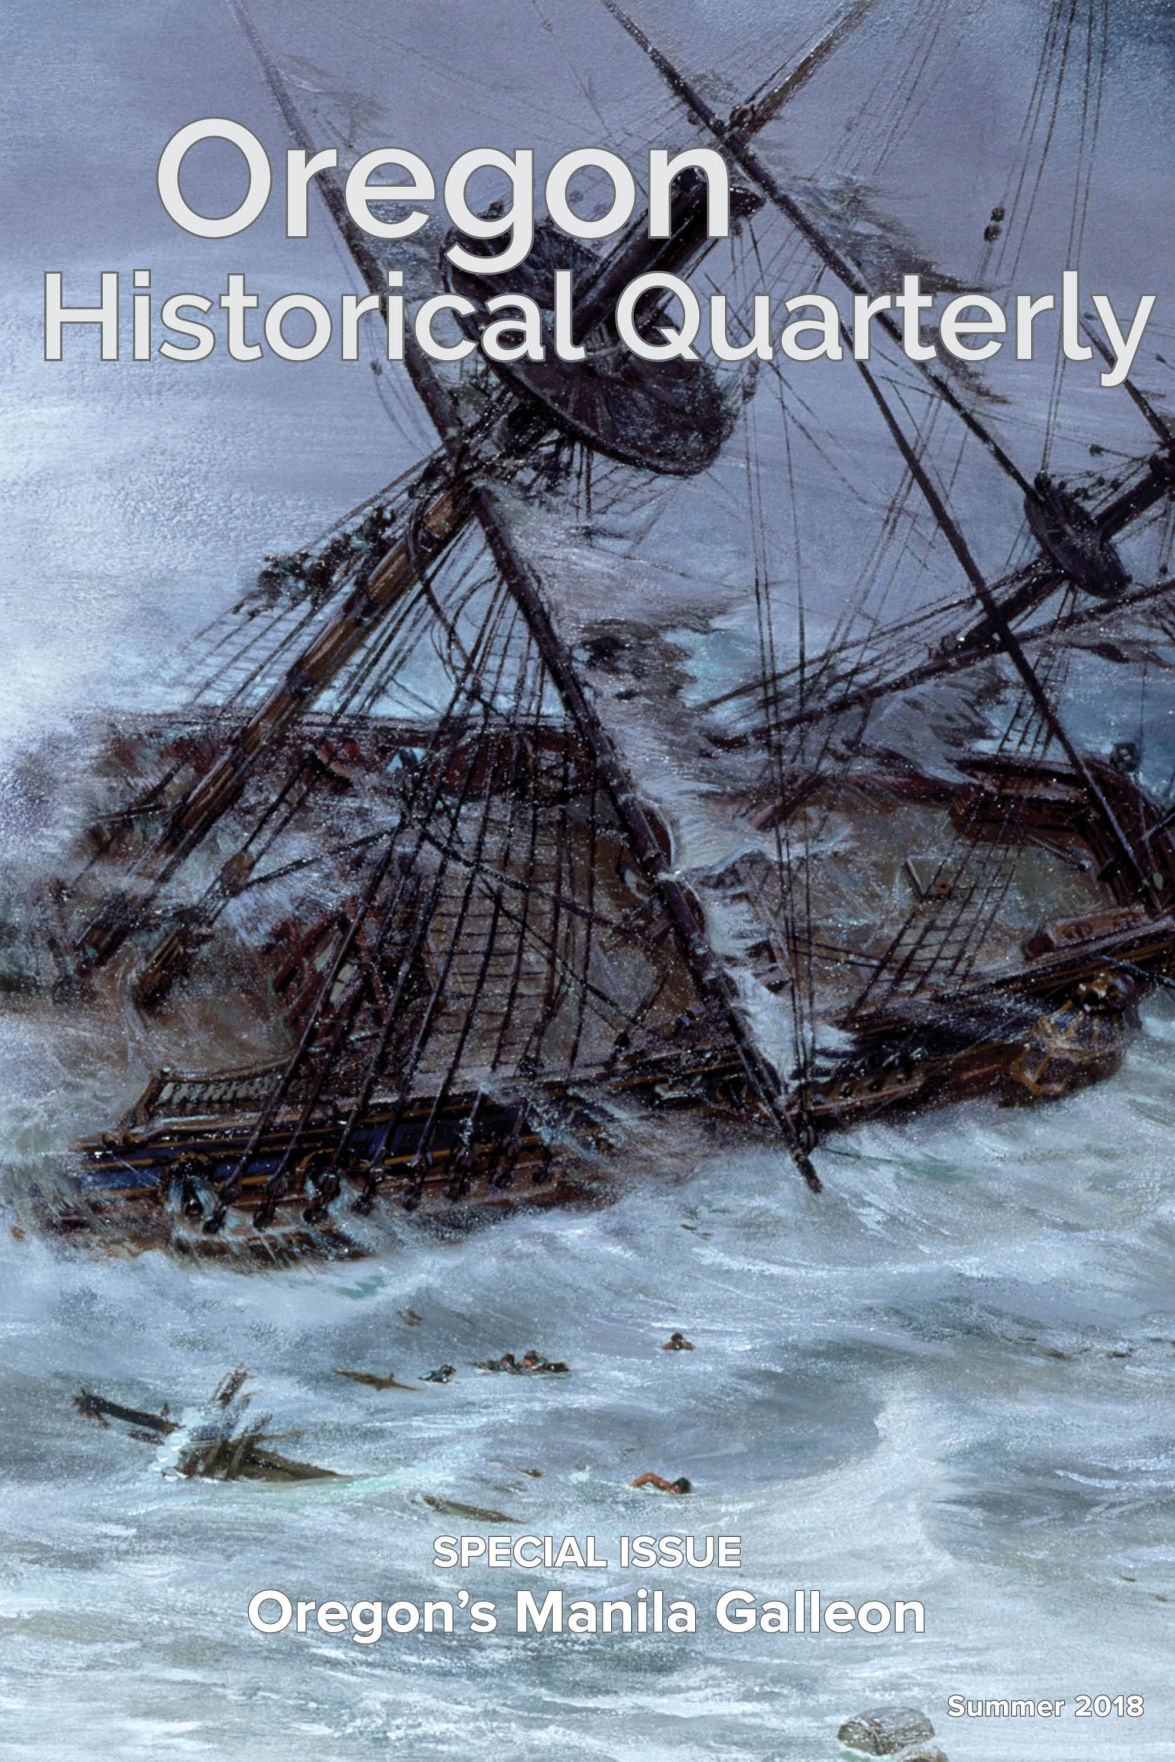 Historical magazine highlights Beeswax wreck